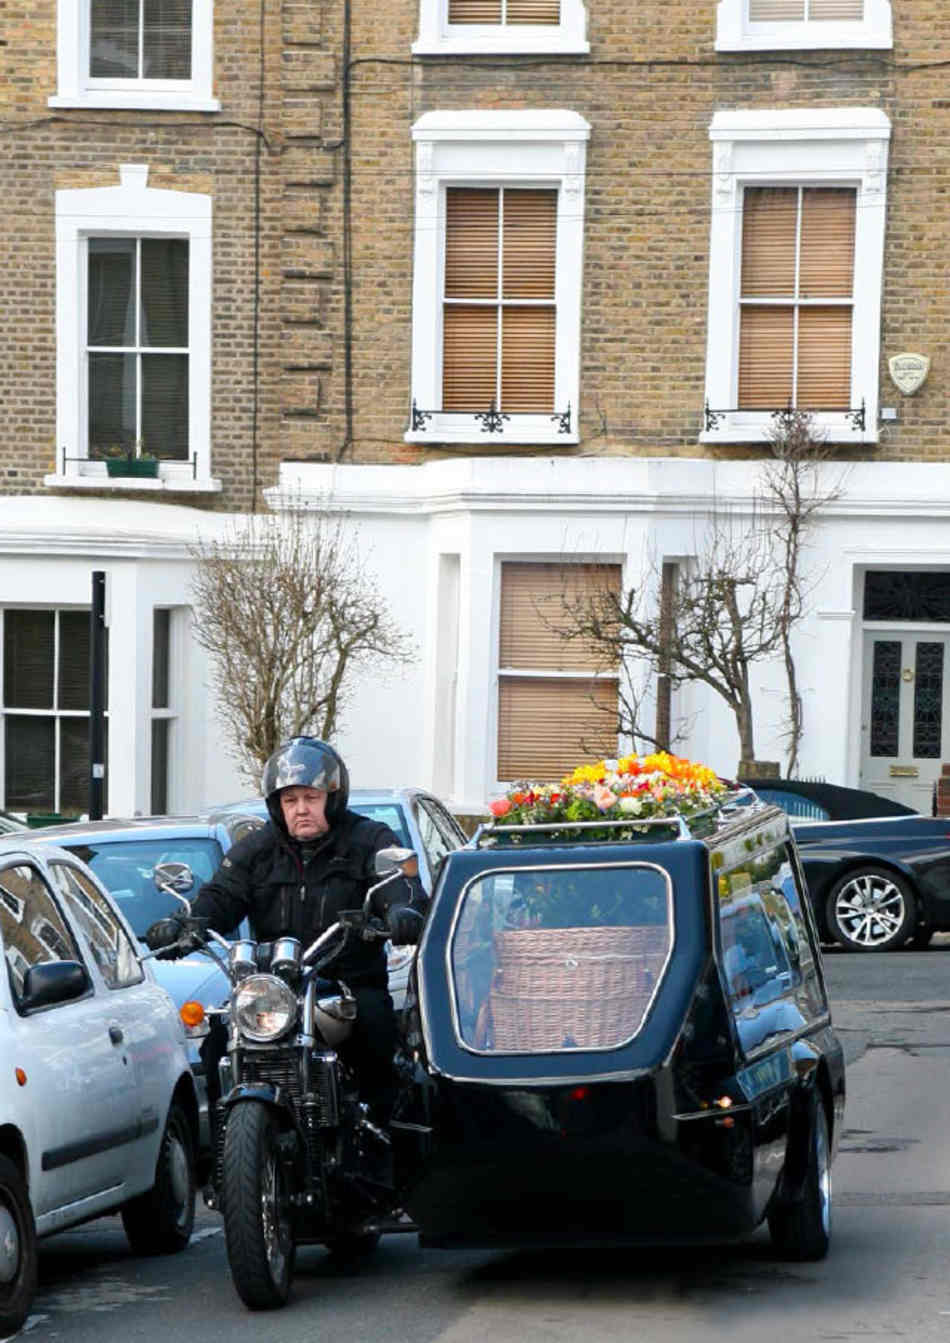 Motorcycle hearse containing Josh's wicker coffin being driven on a suburban London street